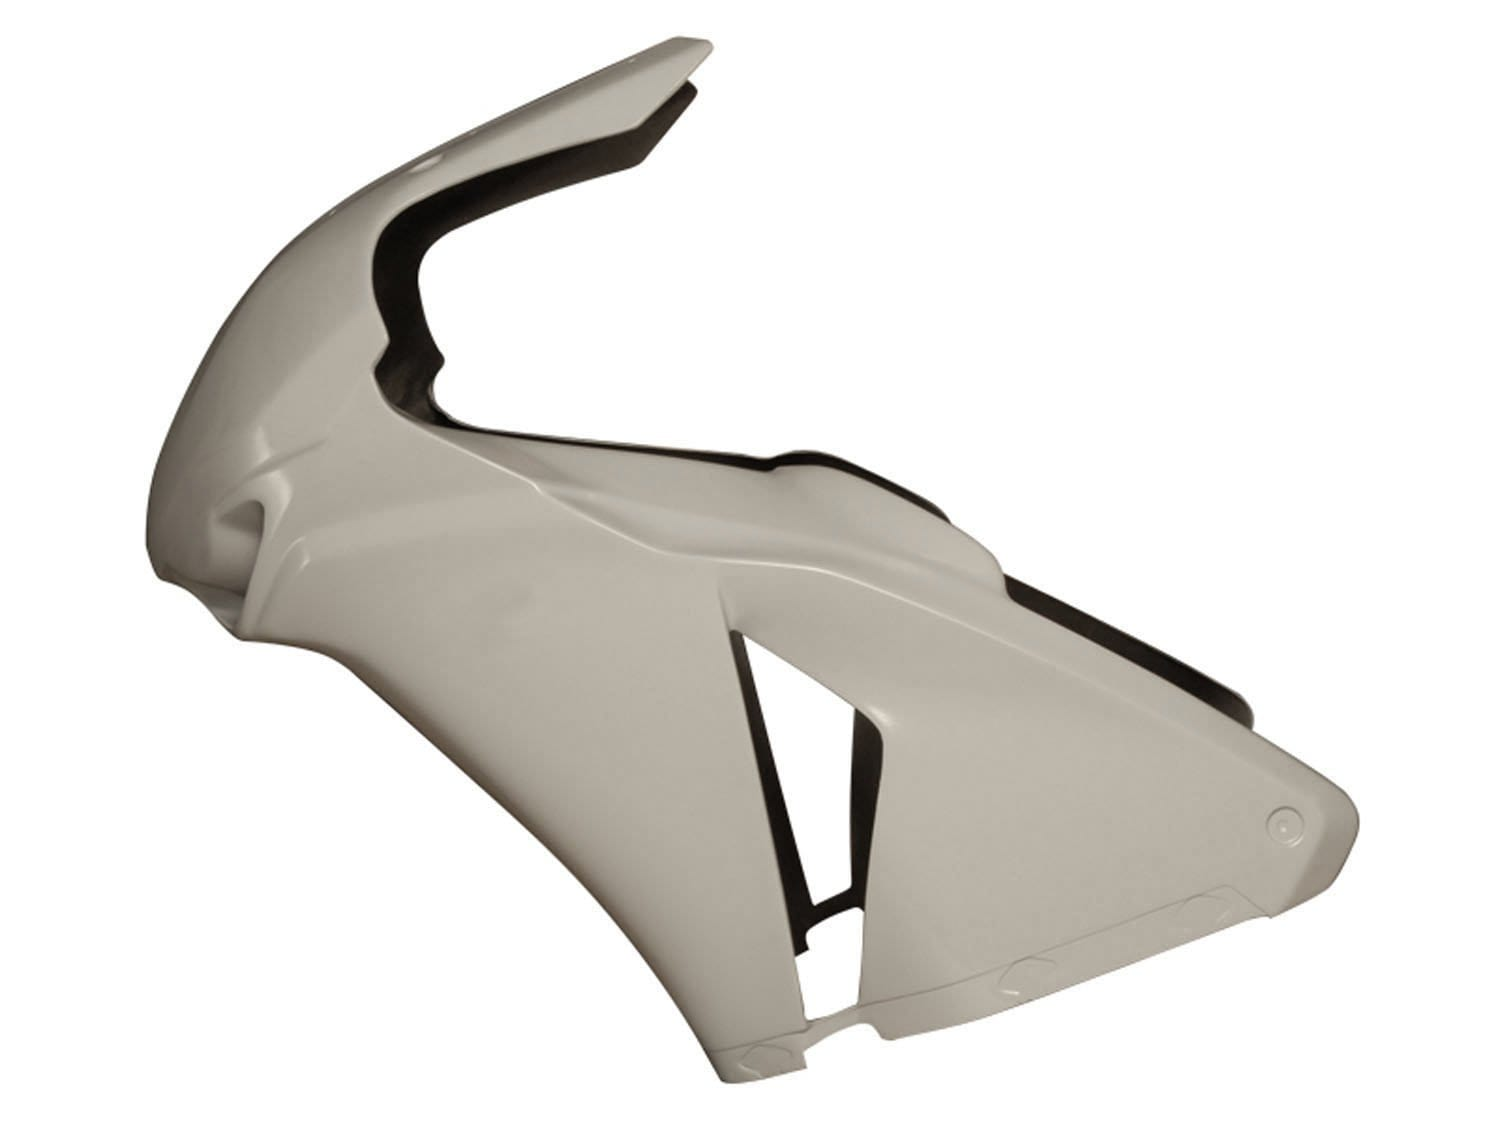 Honda CBR1000RR '08-11 Upper Fairing - Pro Series - Woodcraft Technologies - Motorcycle Parts